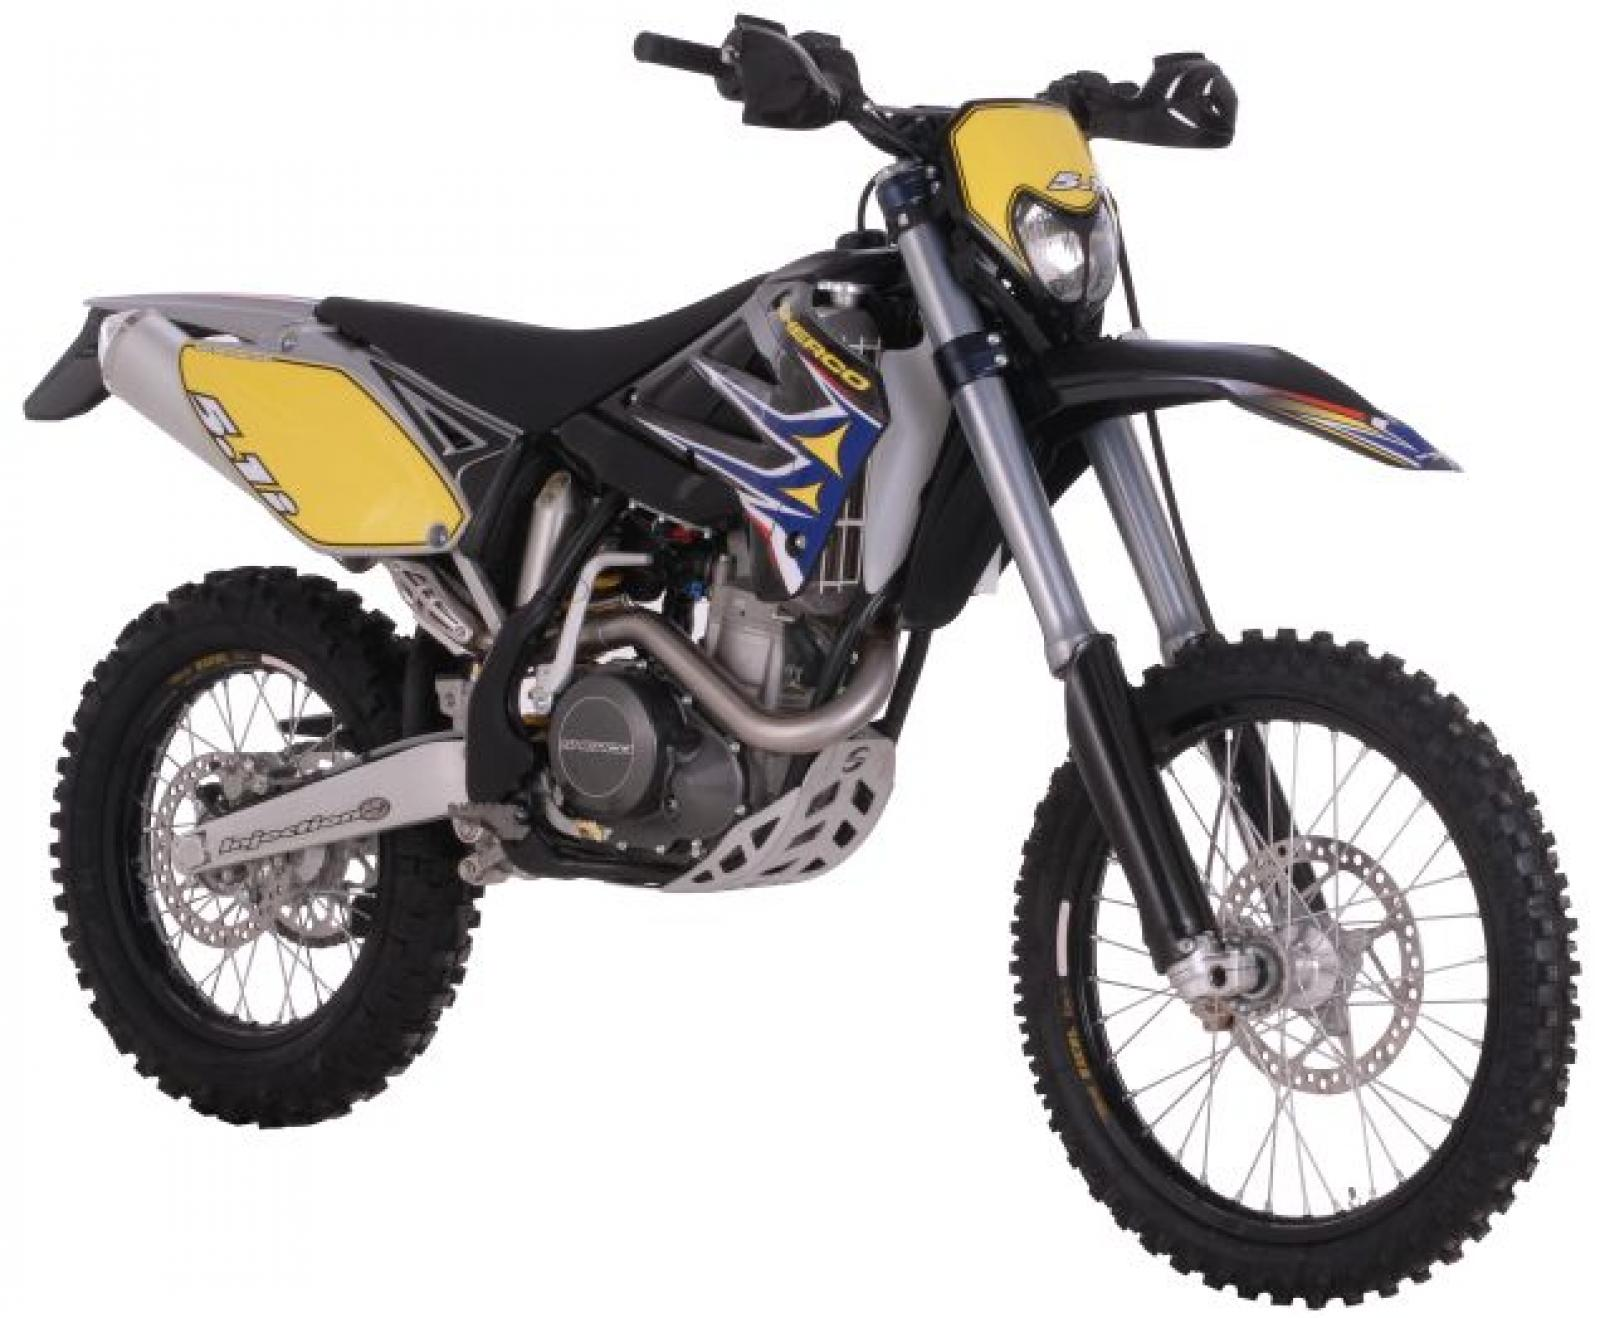 Sherco 125 Enduro Shark Replica images #124638